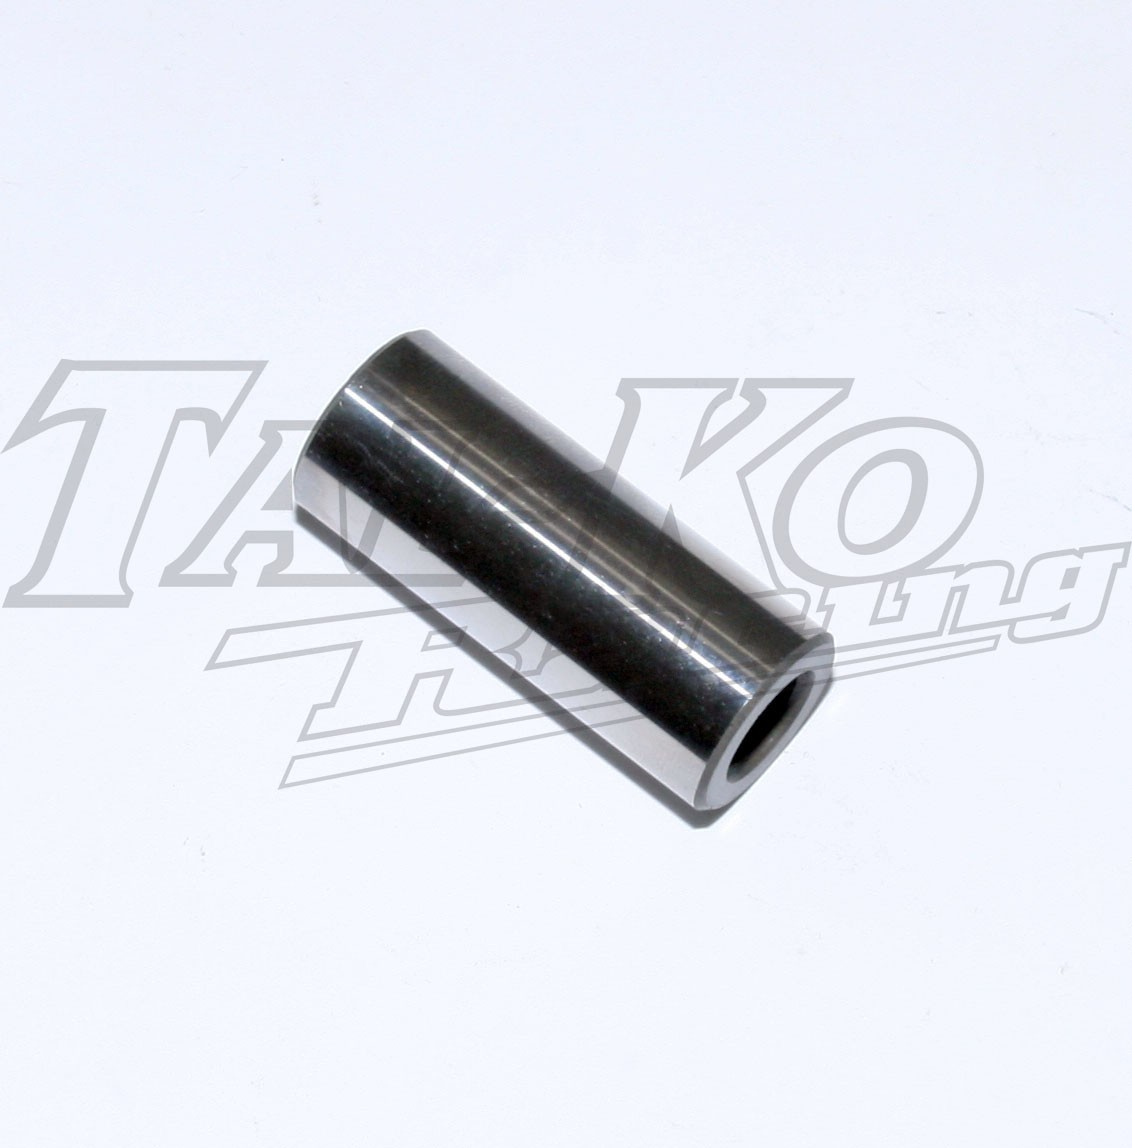 CRANK BIG END PIN HOLLOW 18 x 44 x 9.9